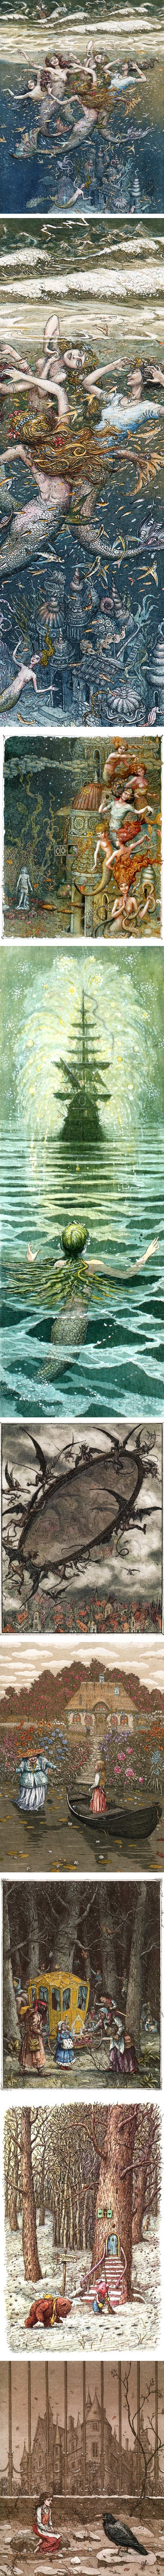 Boris Arkadievich Diodorov, childrens book illustration, Hans Christian Anderson, The Little Mermaid, The Snow Queen, Vinni-Pukh